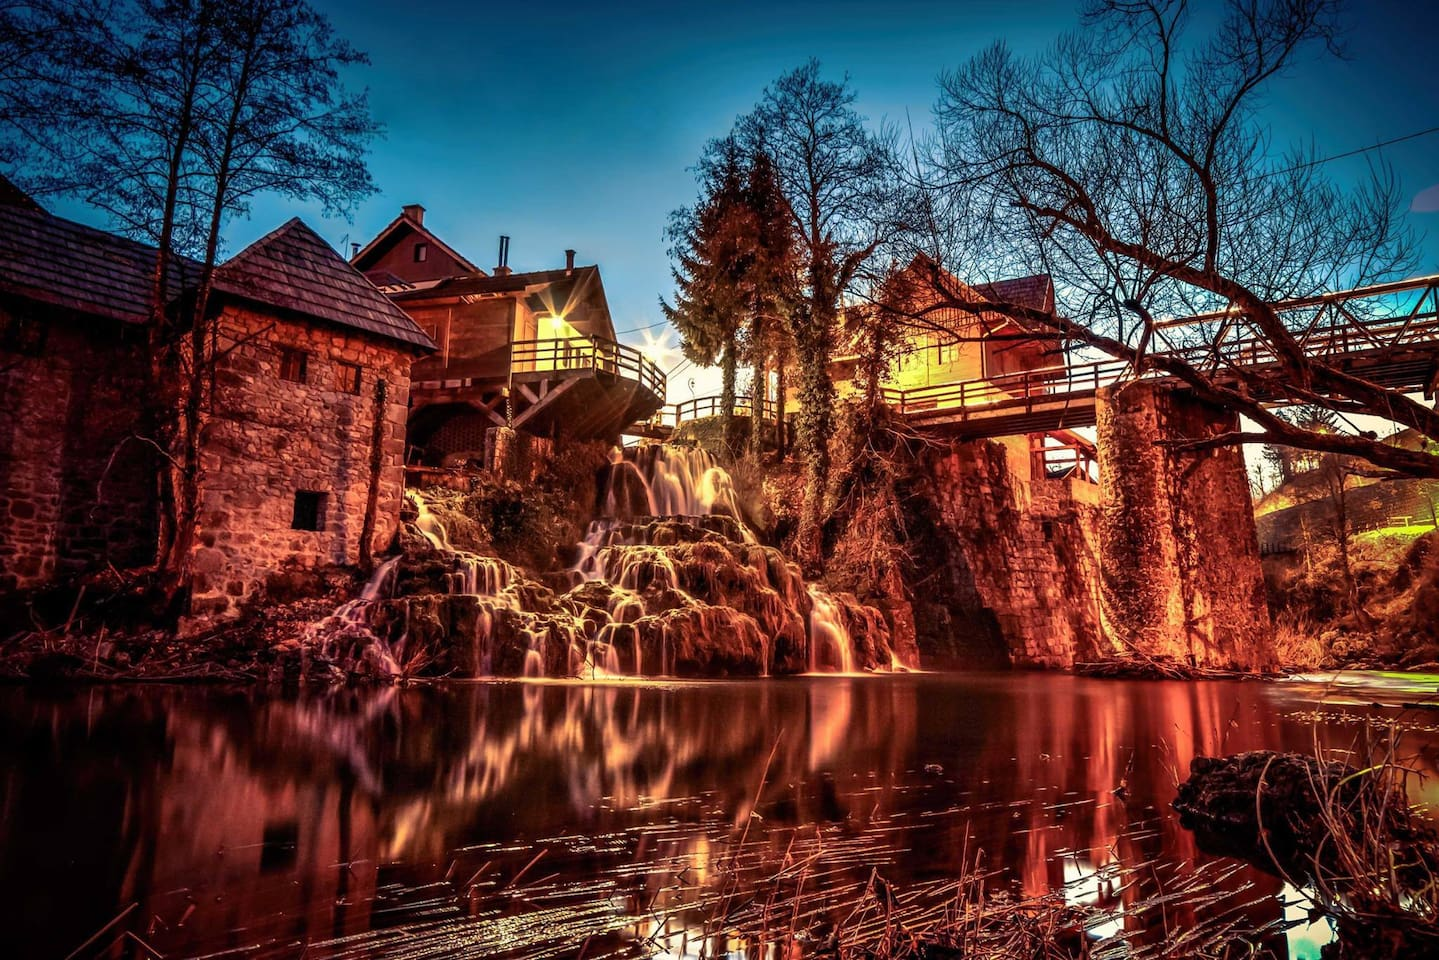 Rastoke Falls - historical water mill village and a protected area of the town Slunj known for the flows of the rivers, Slunjcica into the river Korana, whose flows create a chain of waterfalls, rapids, pools and cascades.  This fairytale village is less than 10 minutes walk away.